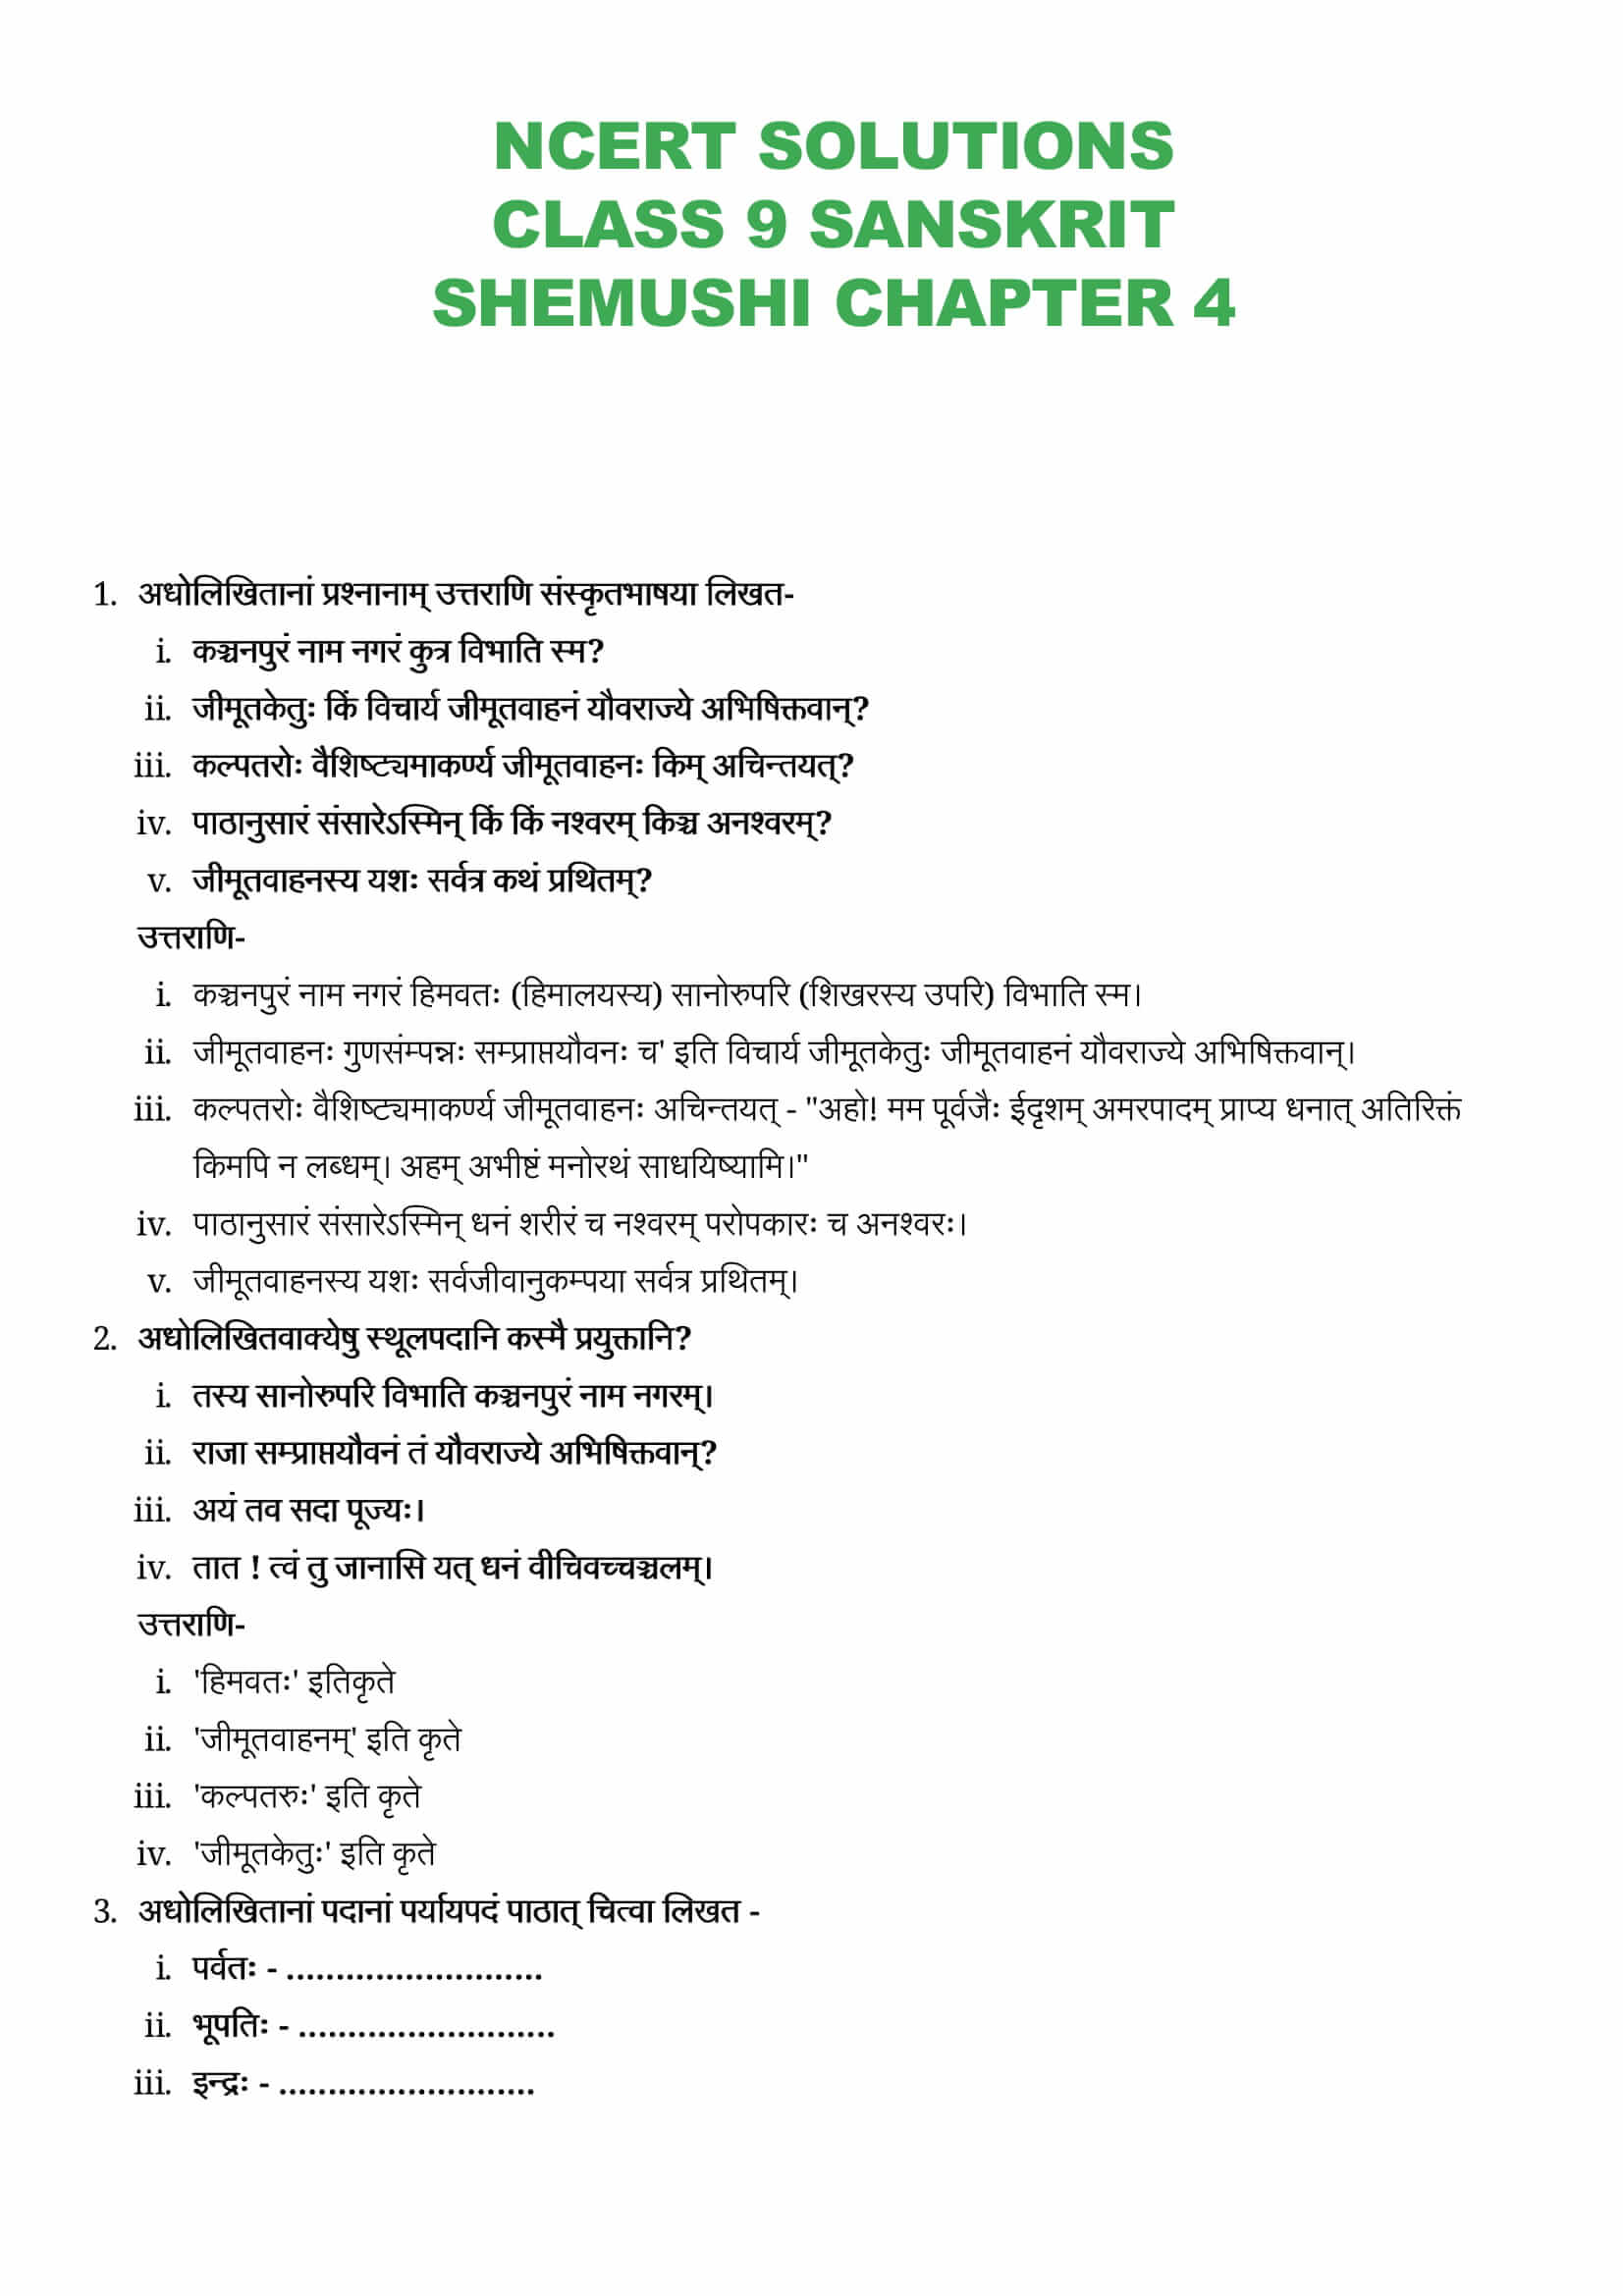 NCERT Solutions For Class 9 Sanskrit Shemushi Chapter 4